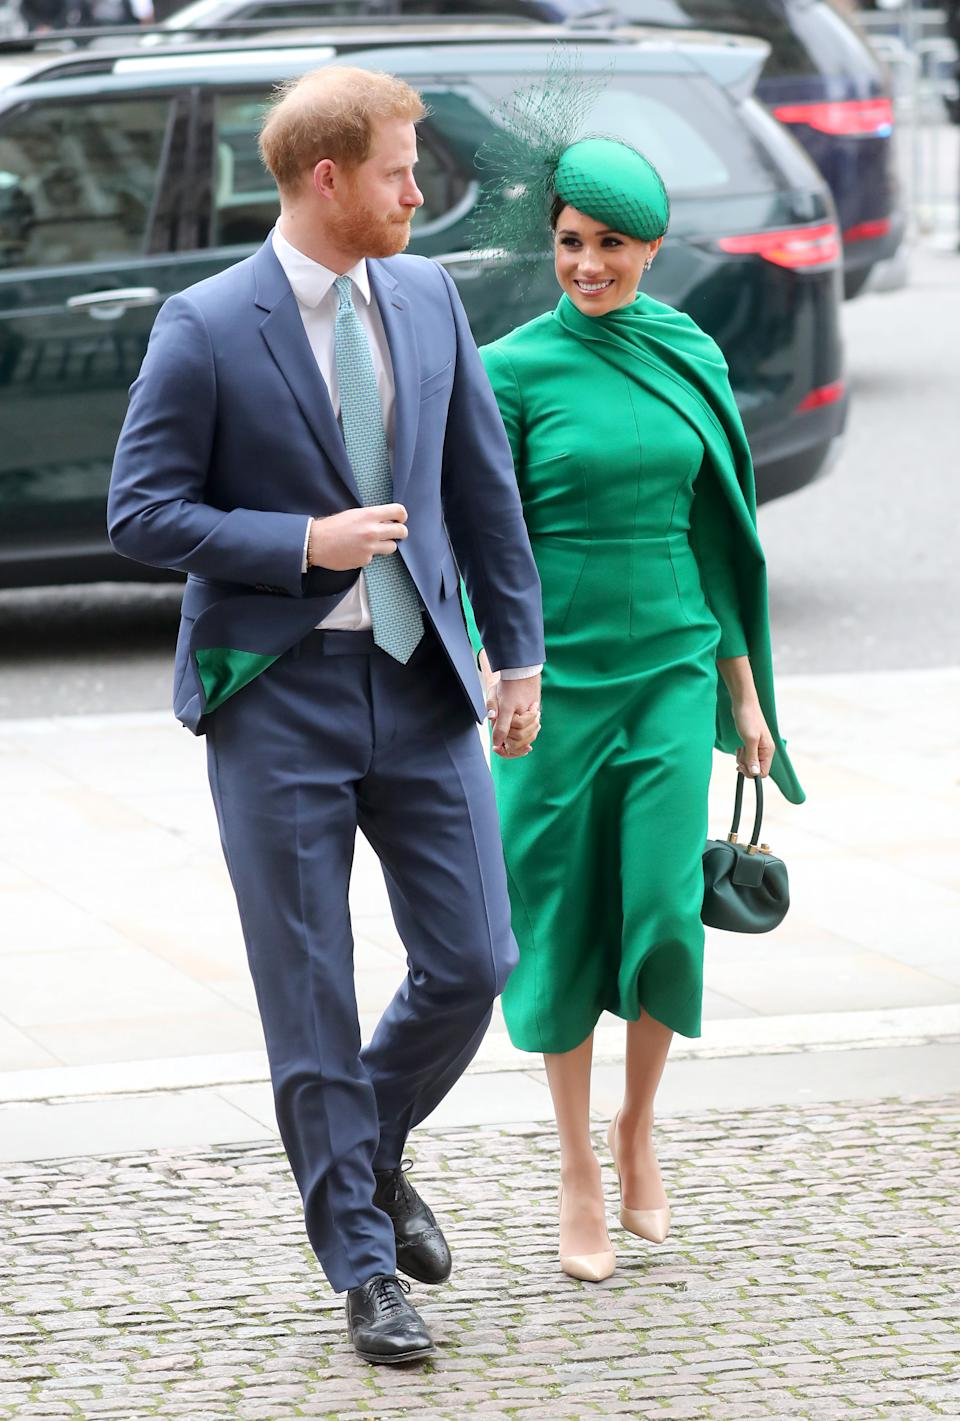 The Duke and Duchess of Sussex arrive for the annual Commonwealth Day Service 2020 at Westminster Abbey. (Getty Images)